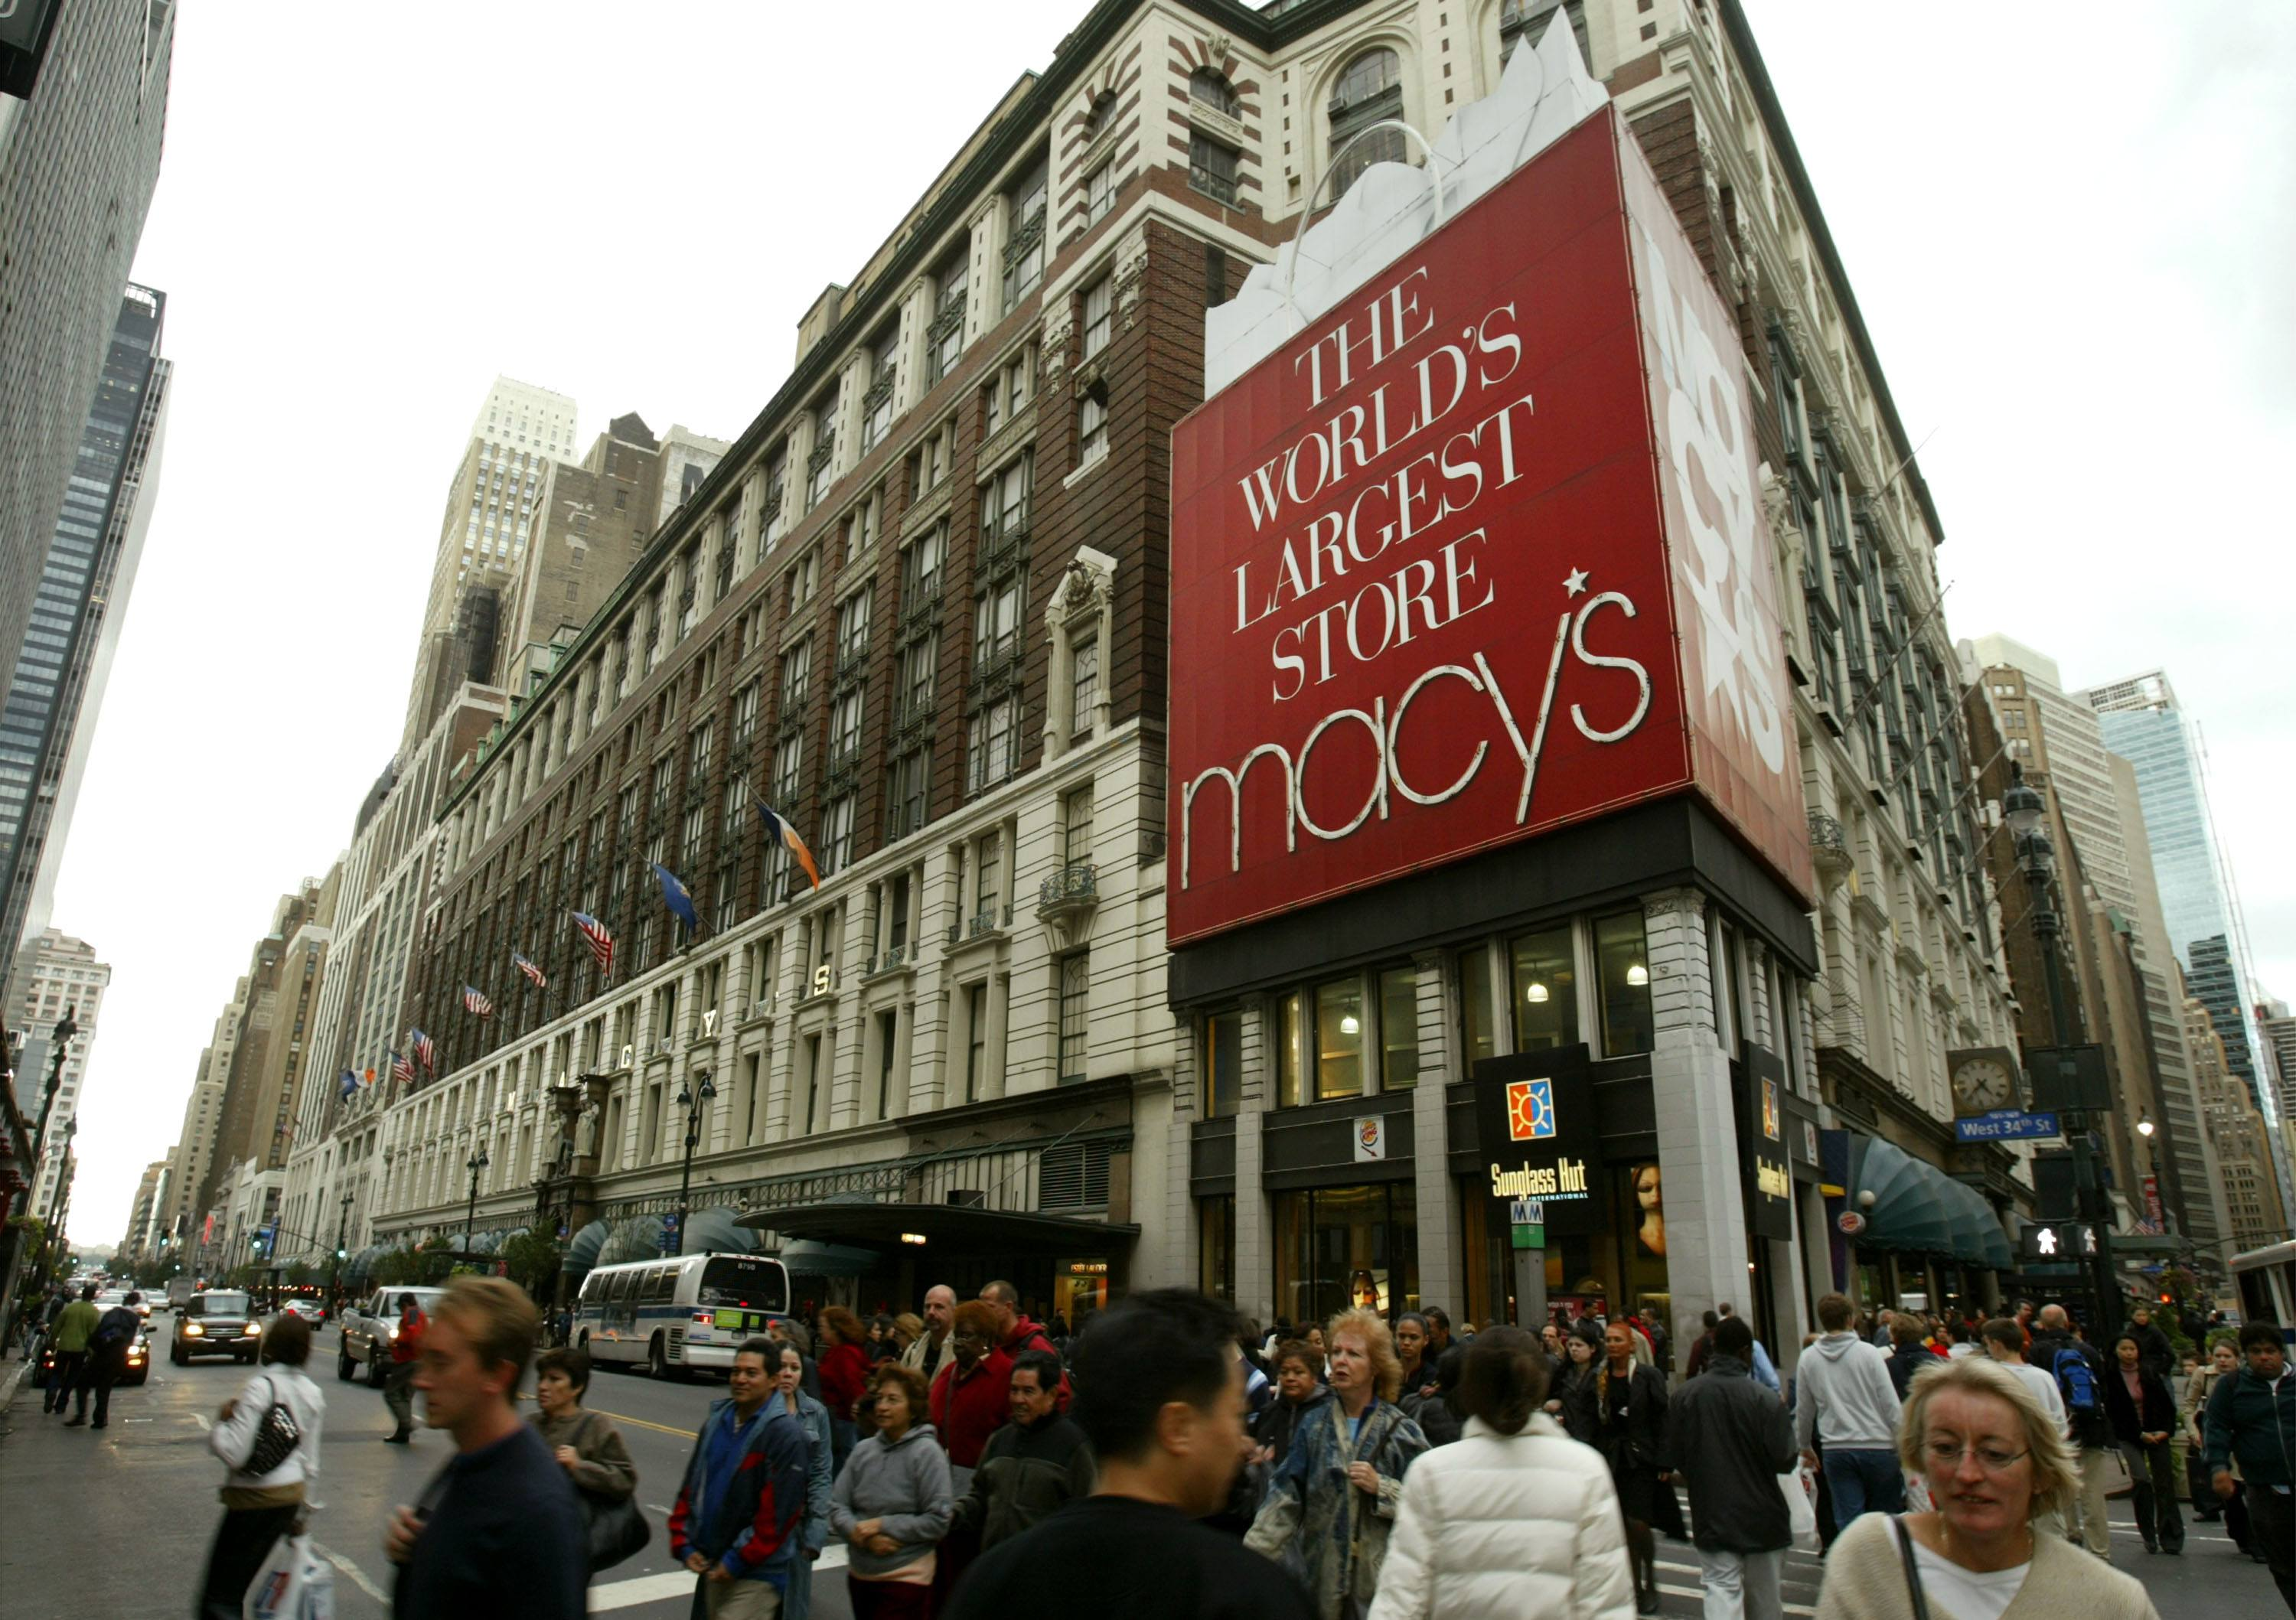 A Macy's department store